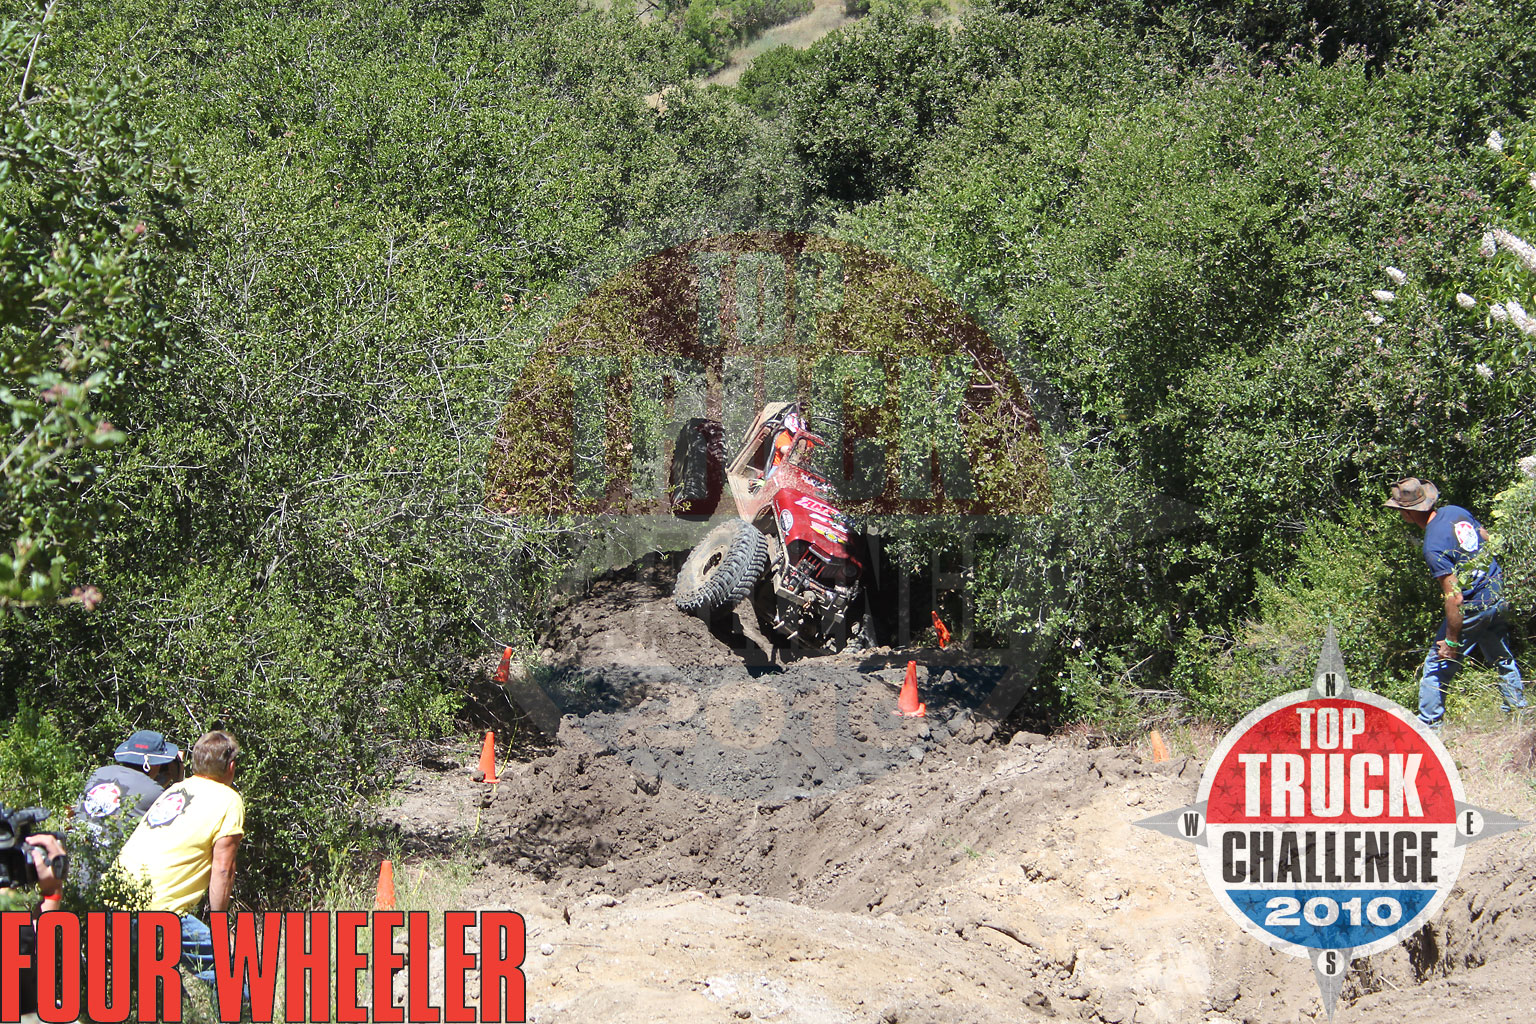 2010 Top Truck Challenge Hill Climb Pj Hale 1948 Willys Buggy